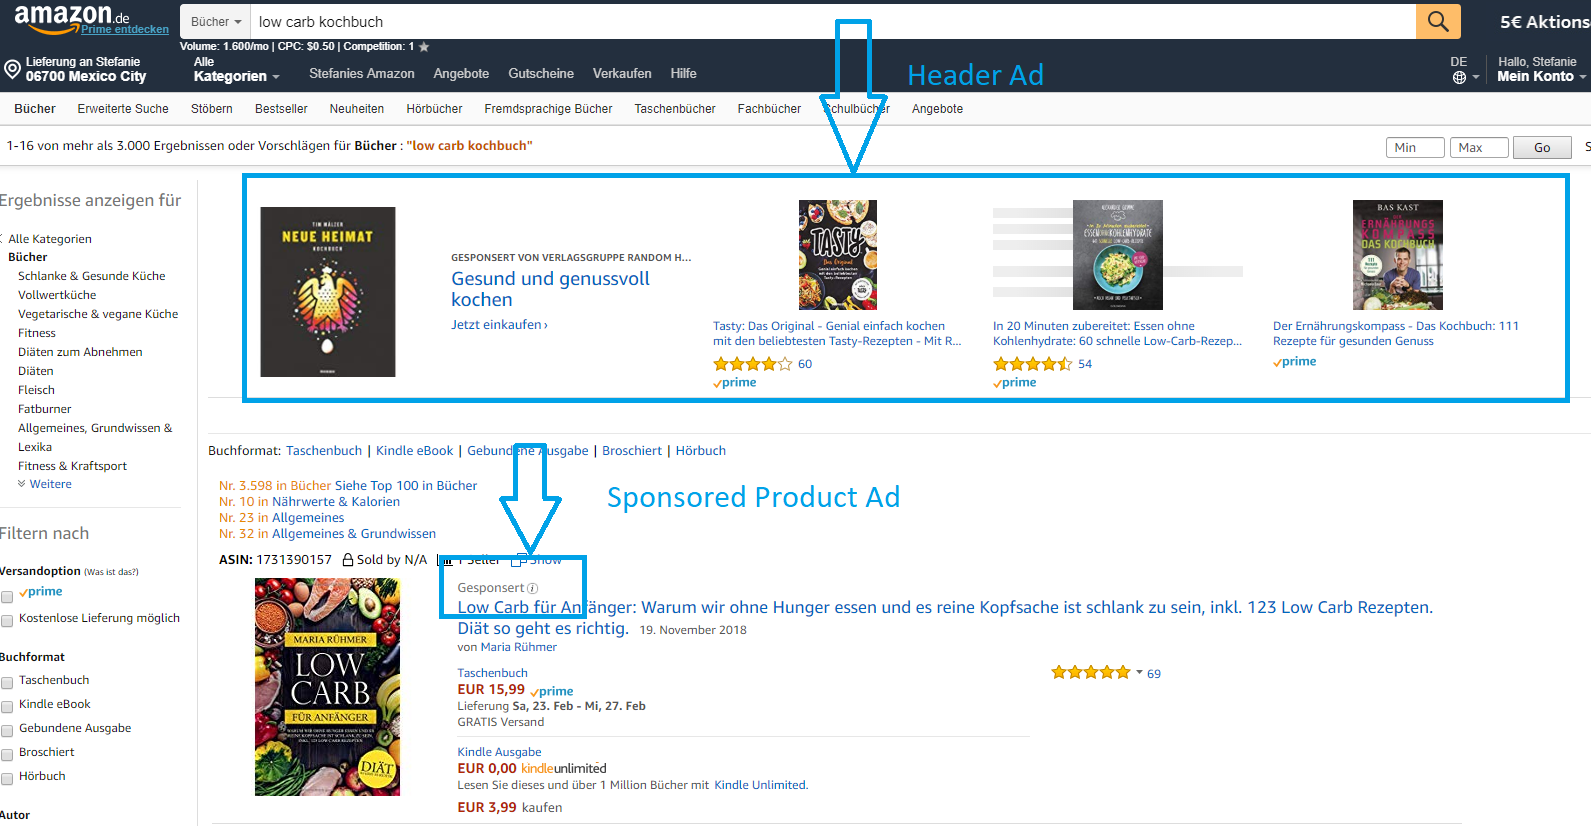 Amazon Werbekampagne Sponsored Product Ad